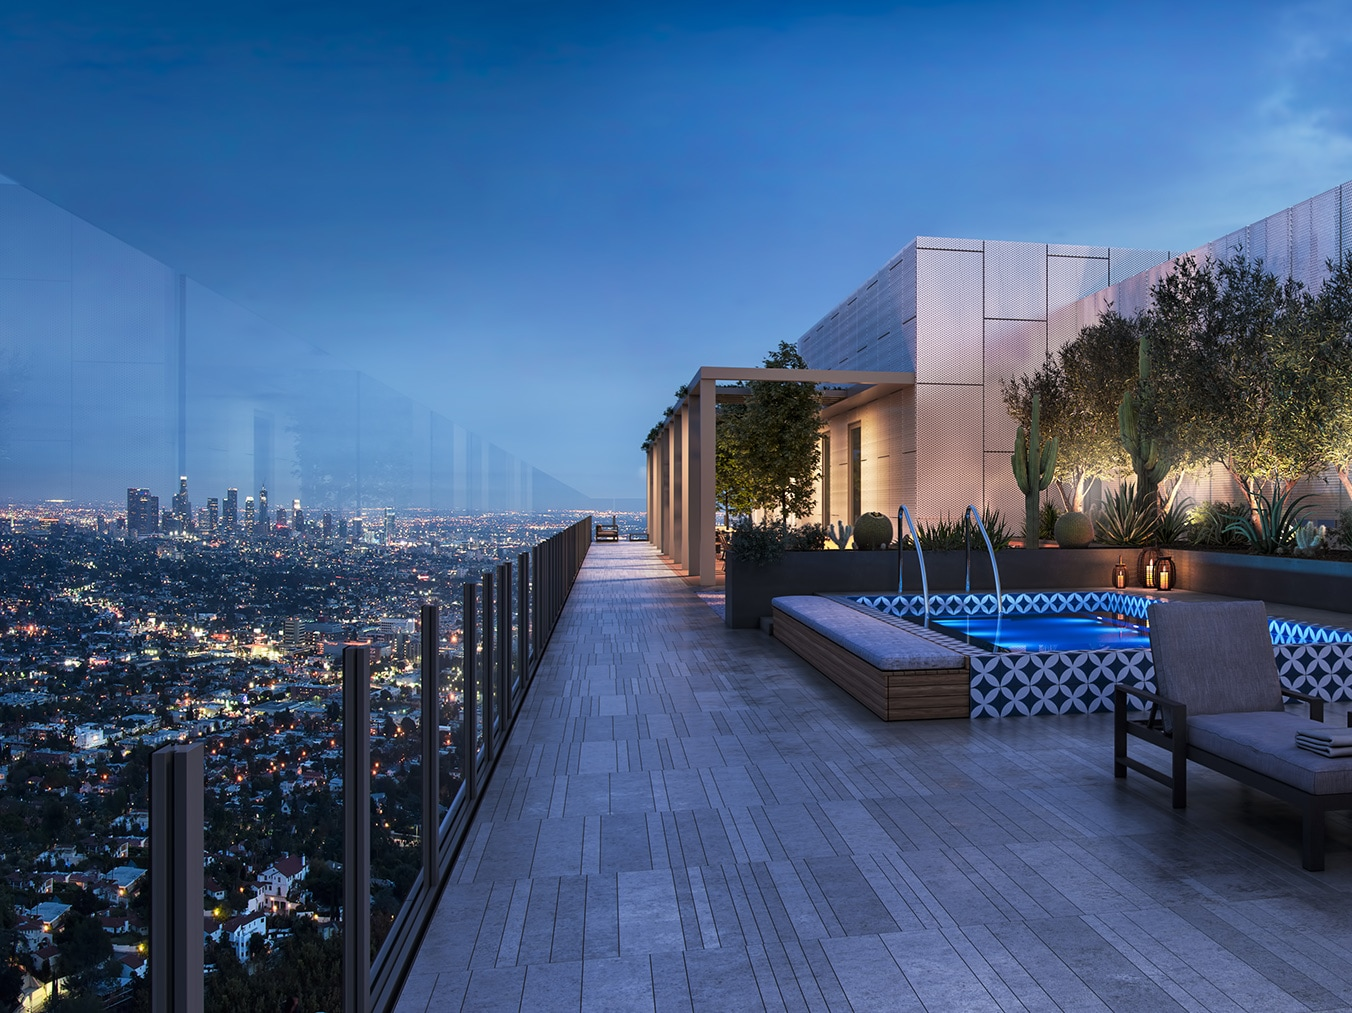 City views from ARQ residential tower in West Los Angeles.